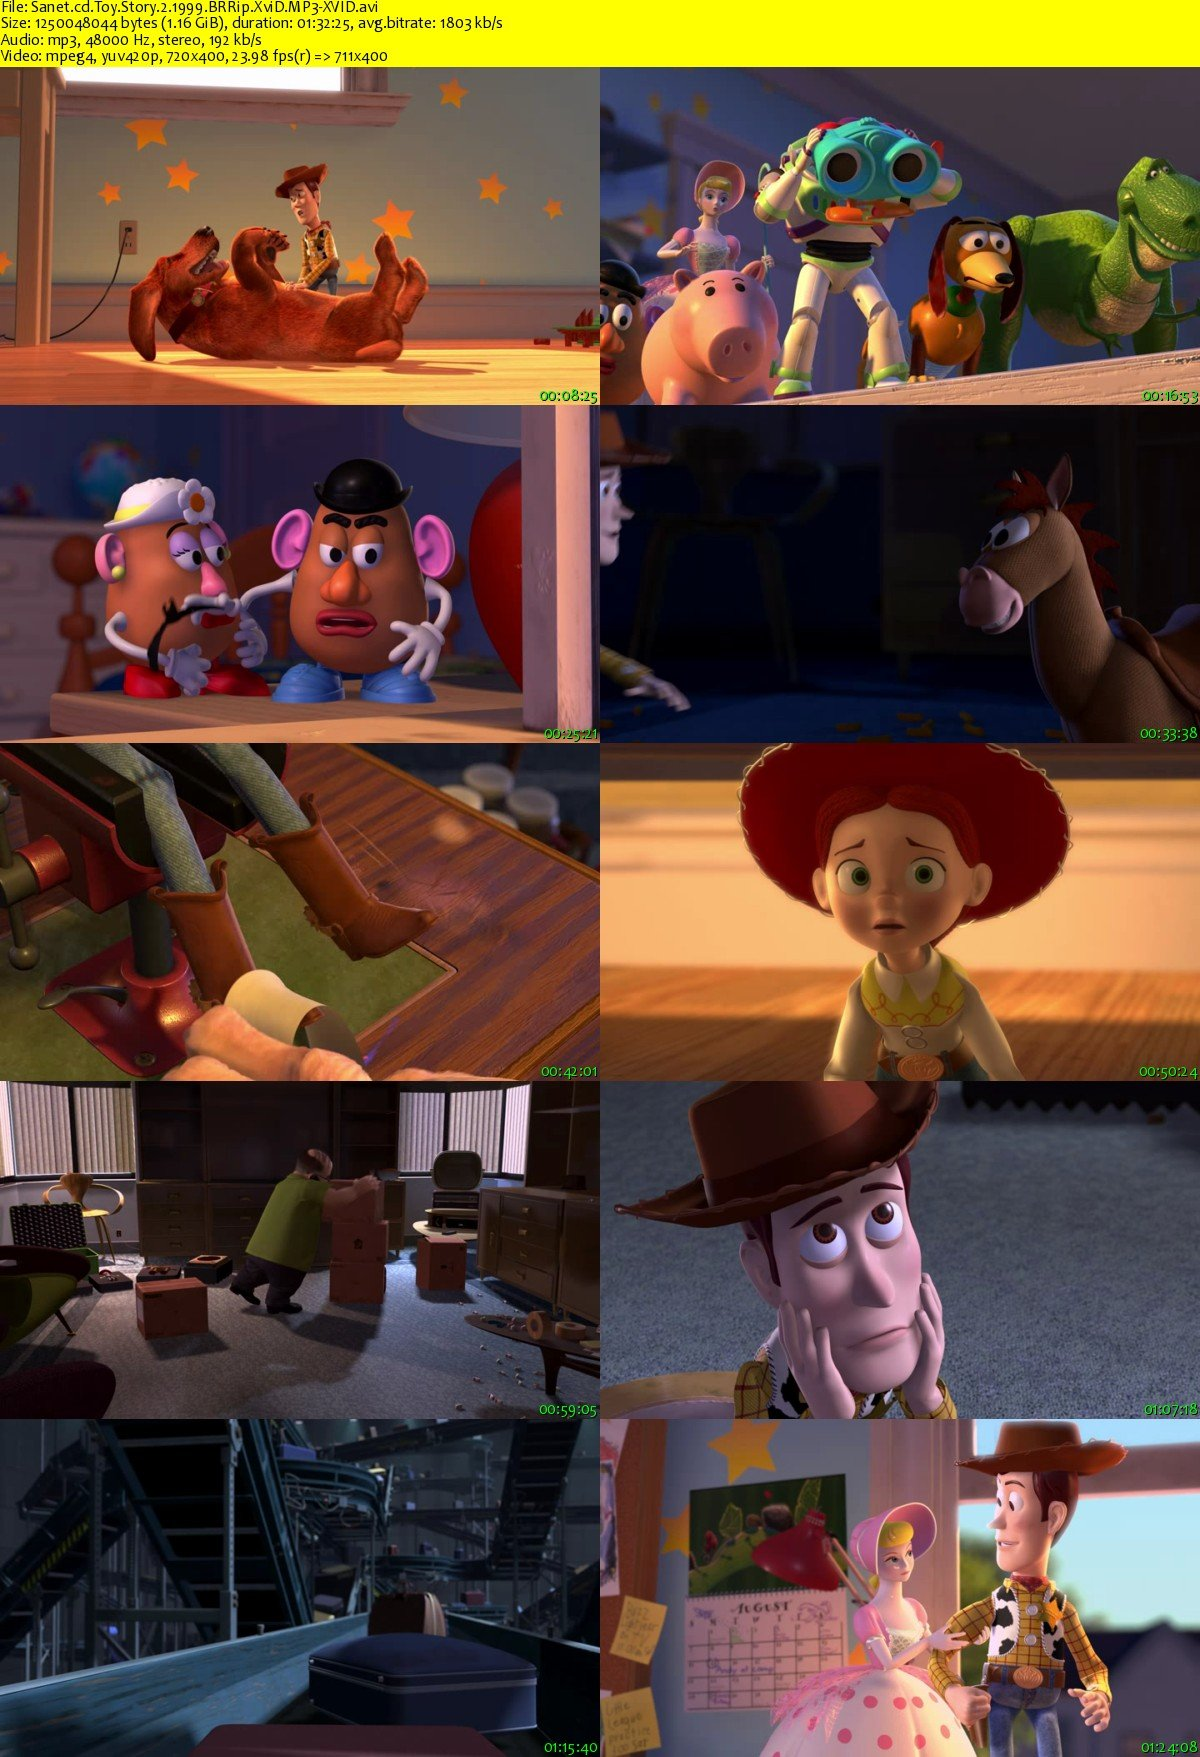 Toy Story 4 Trailer 2012 : Download toy story brrip xvid mp softarchive